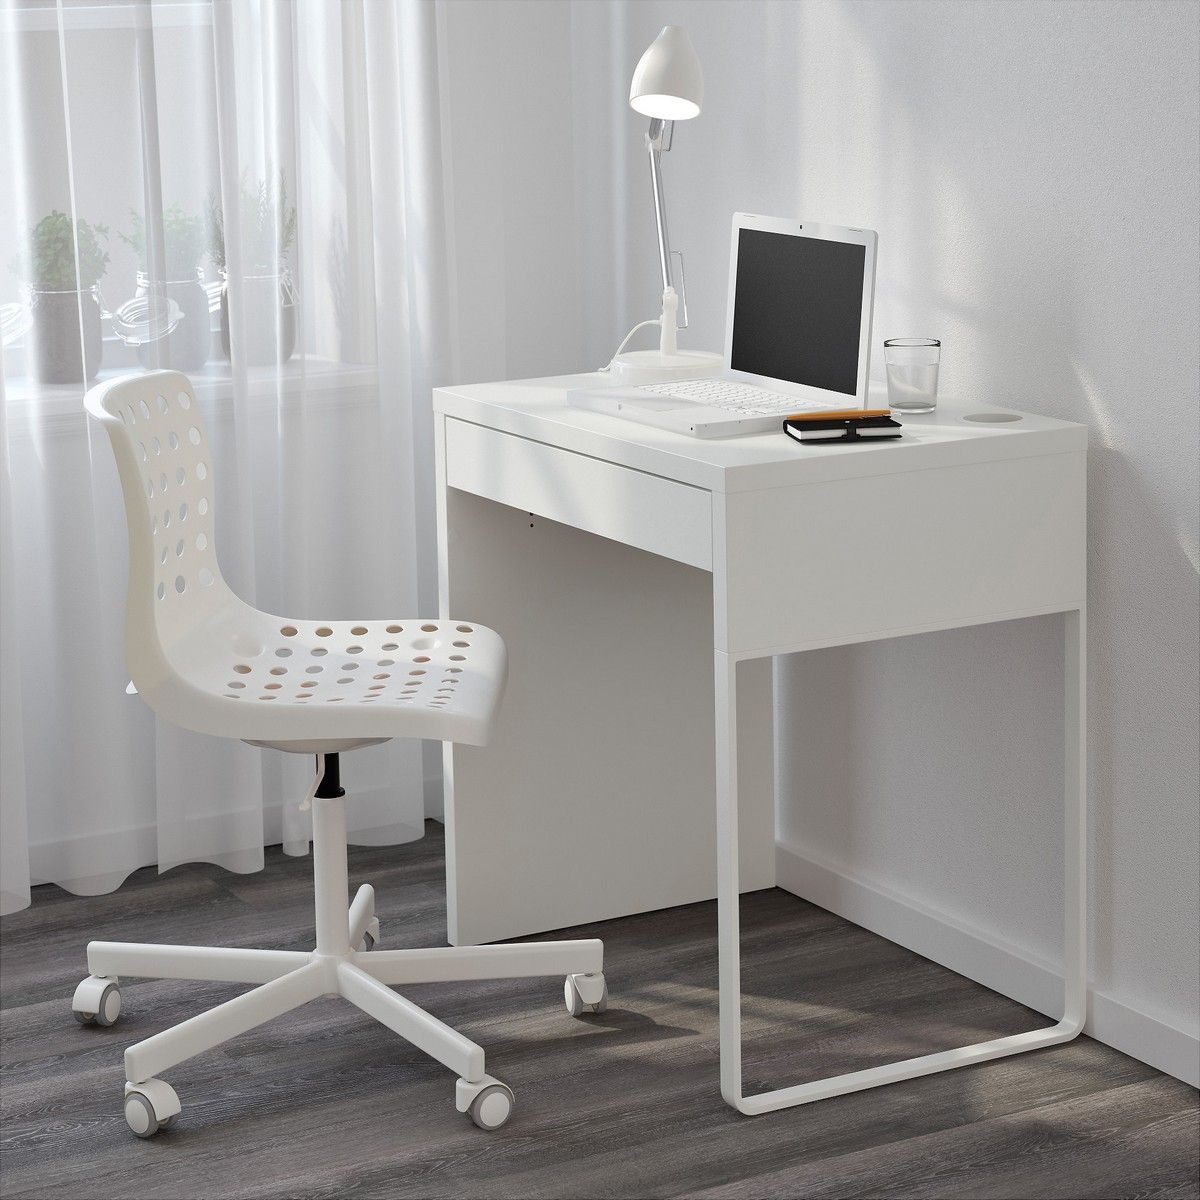 Apartment Computer Desk Narrow Computer Desk Ikea Micke White For Small Space